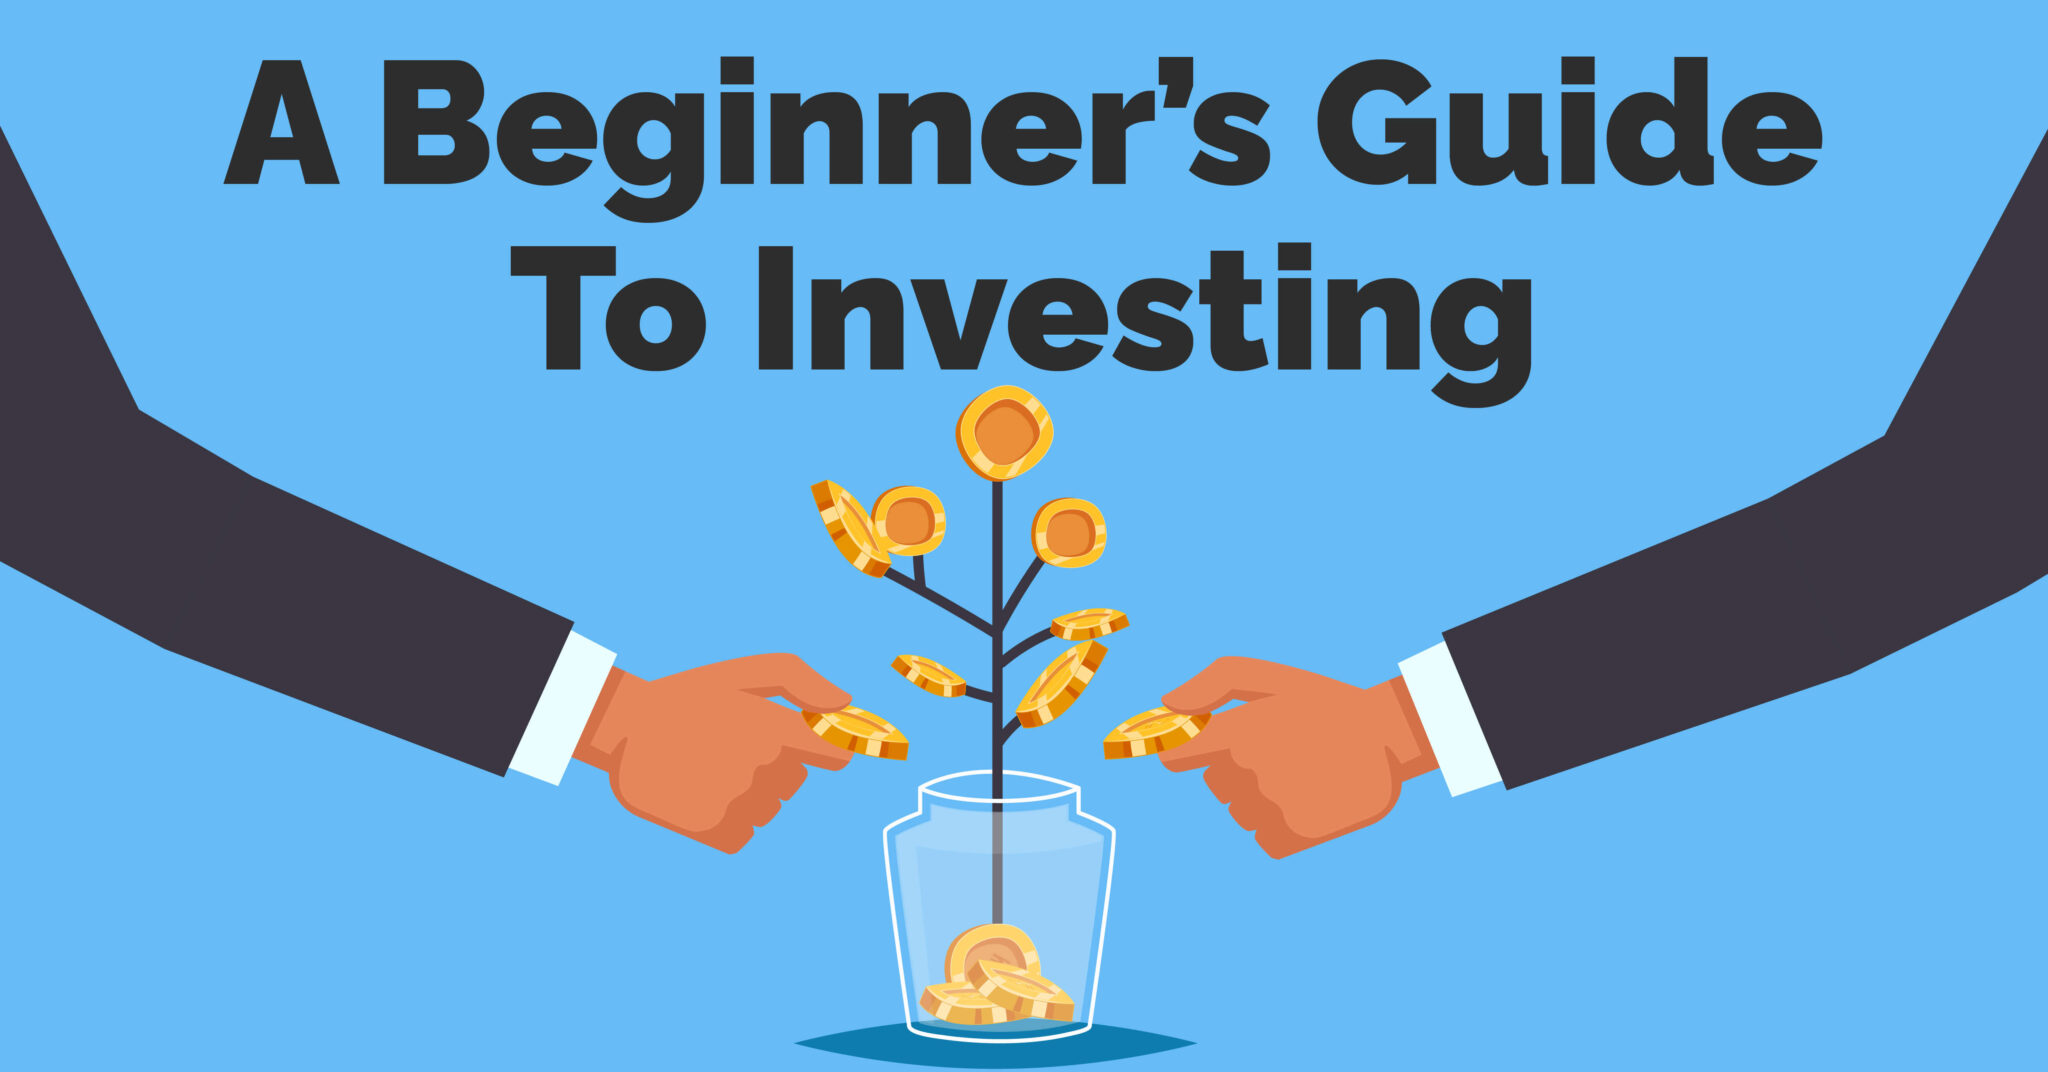 A Beginners' Guide To Investing